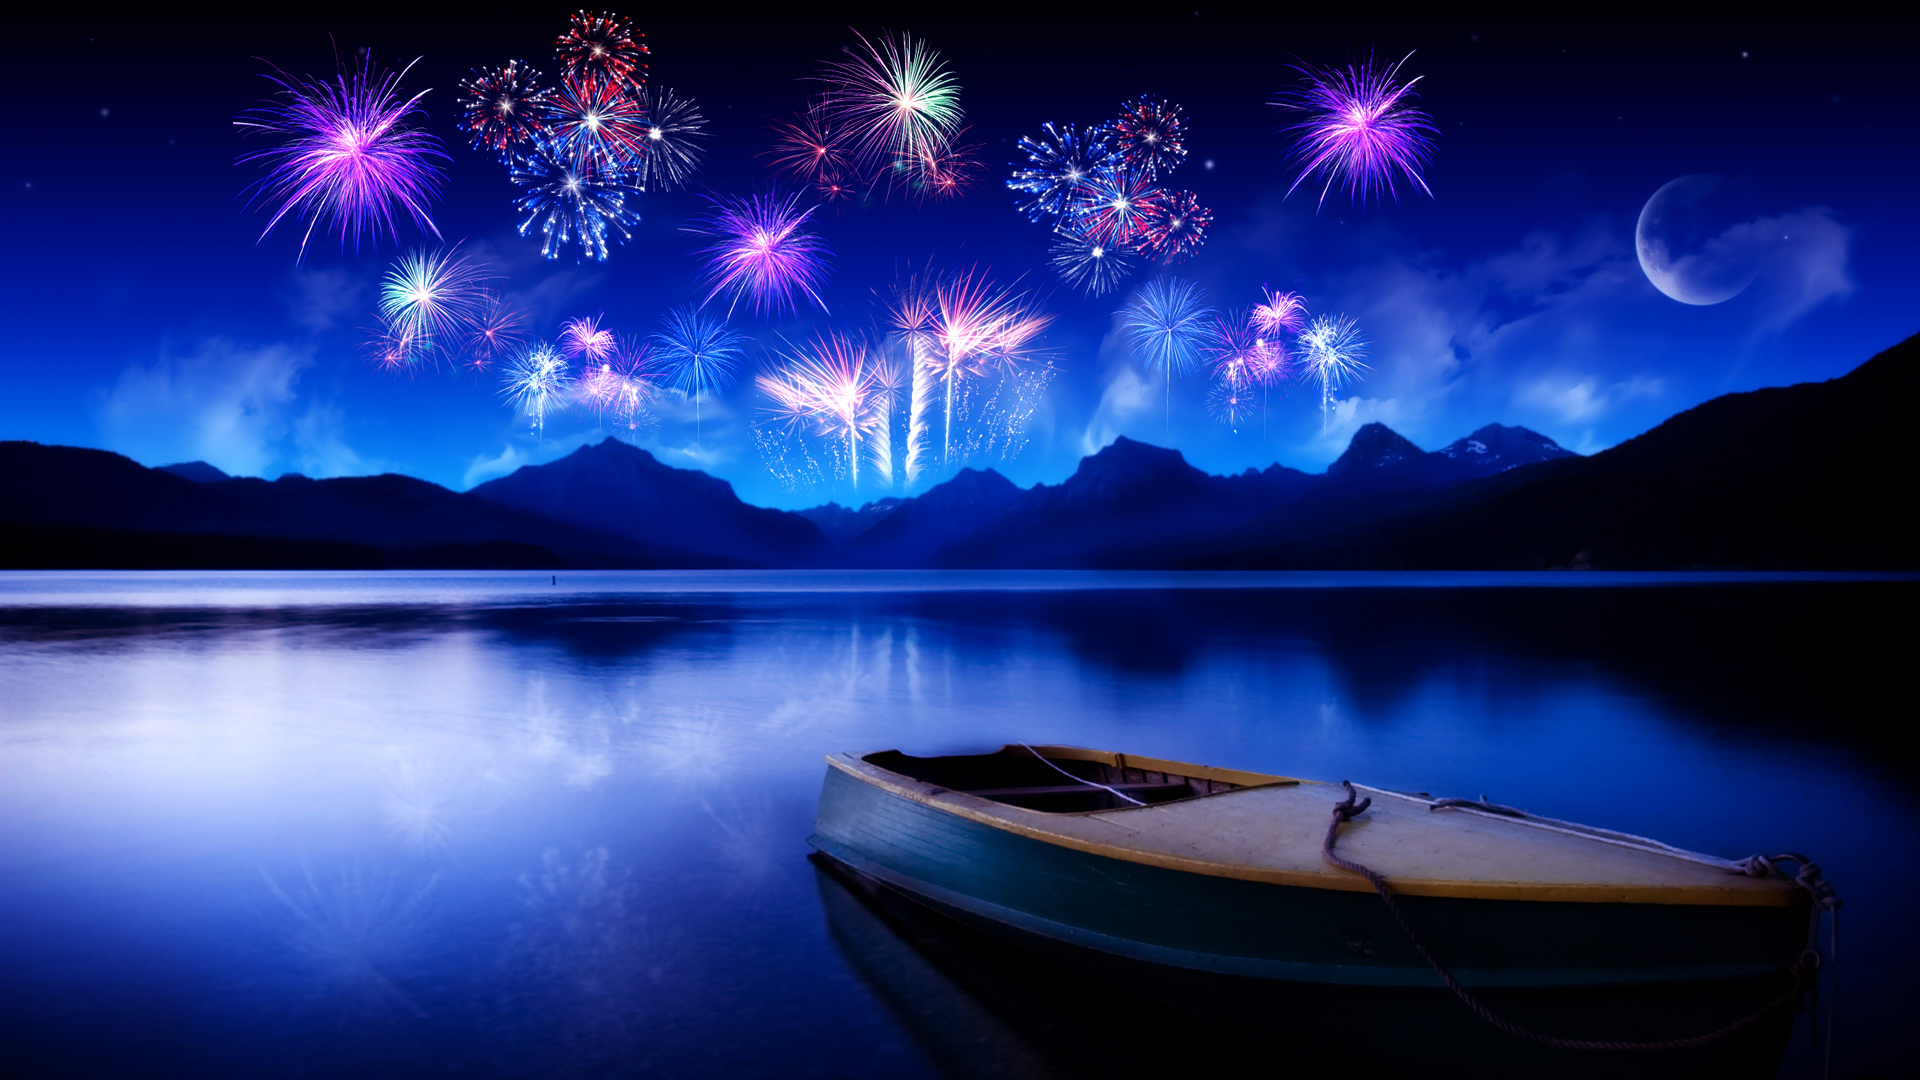 New Years Fireworks wallpaper Full HD 1080p 1920x1080